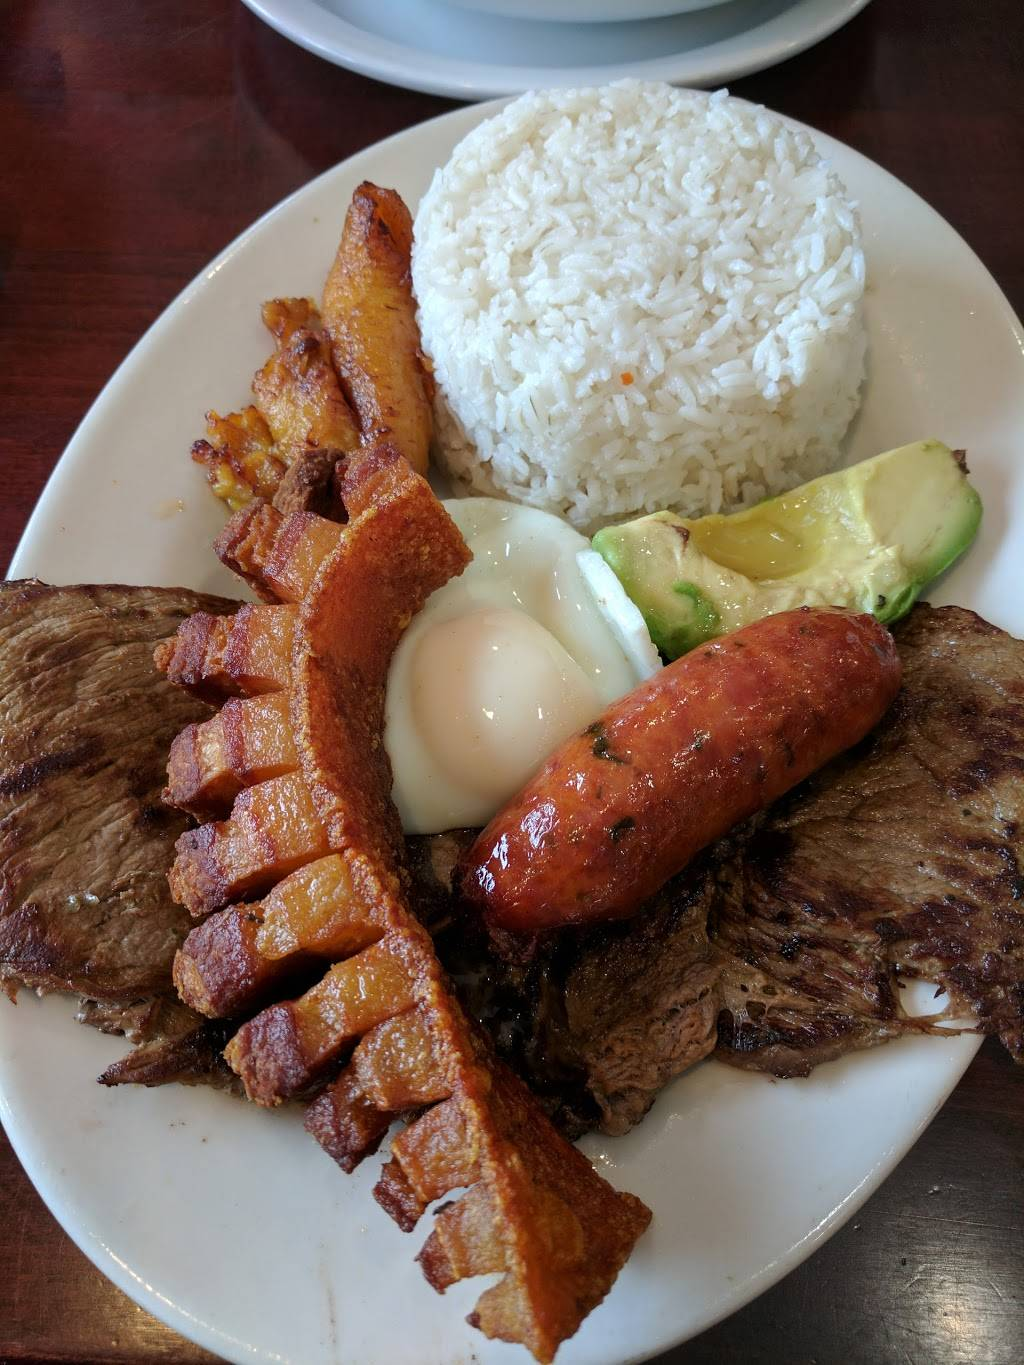 Noches de Colombia   restaurant   231-233 Central Ave, Jersey City, NJ 07307, USA   2012222617 OR +1 201-222-2617